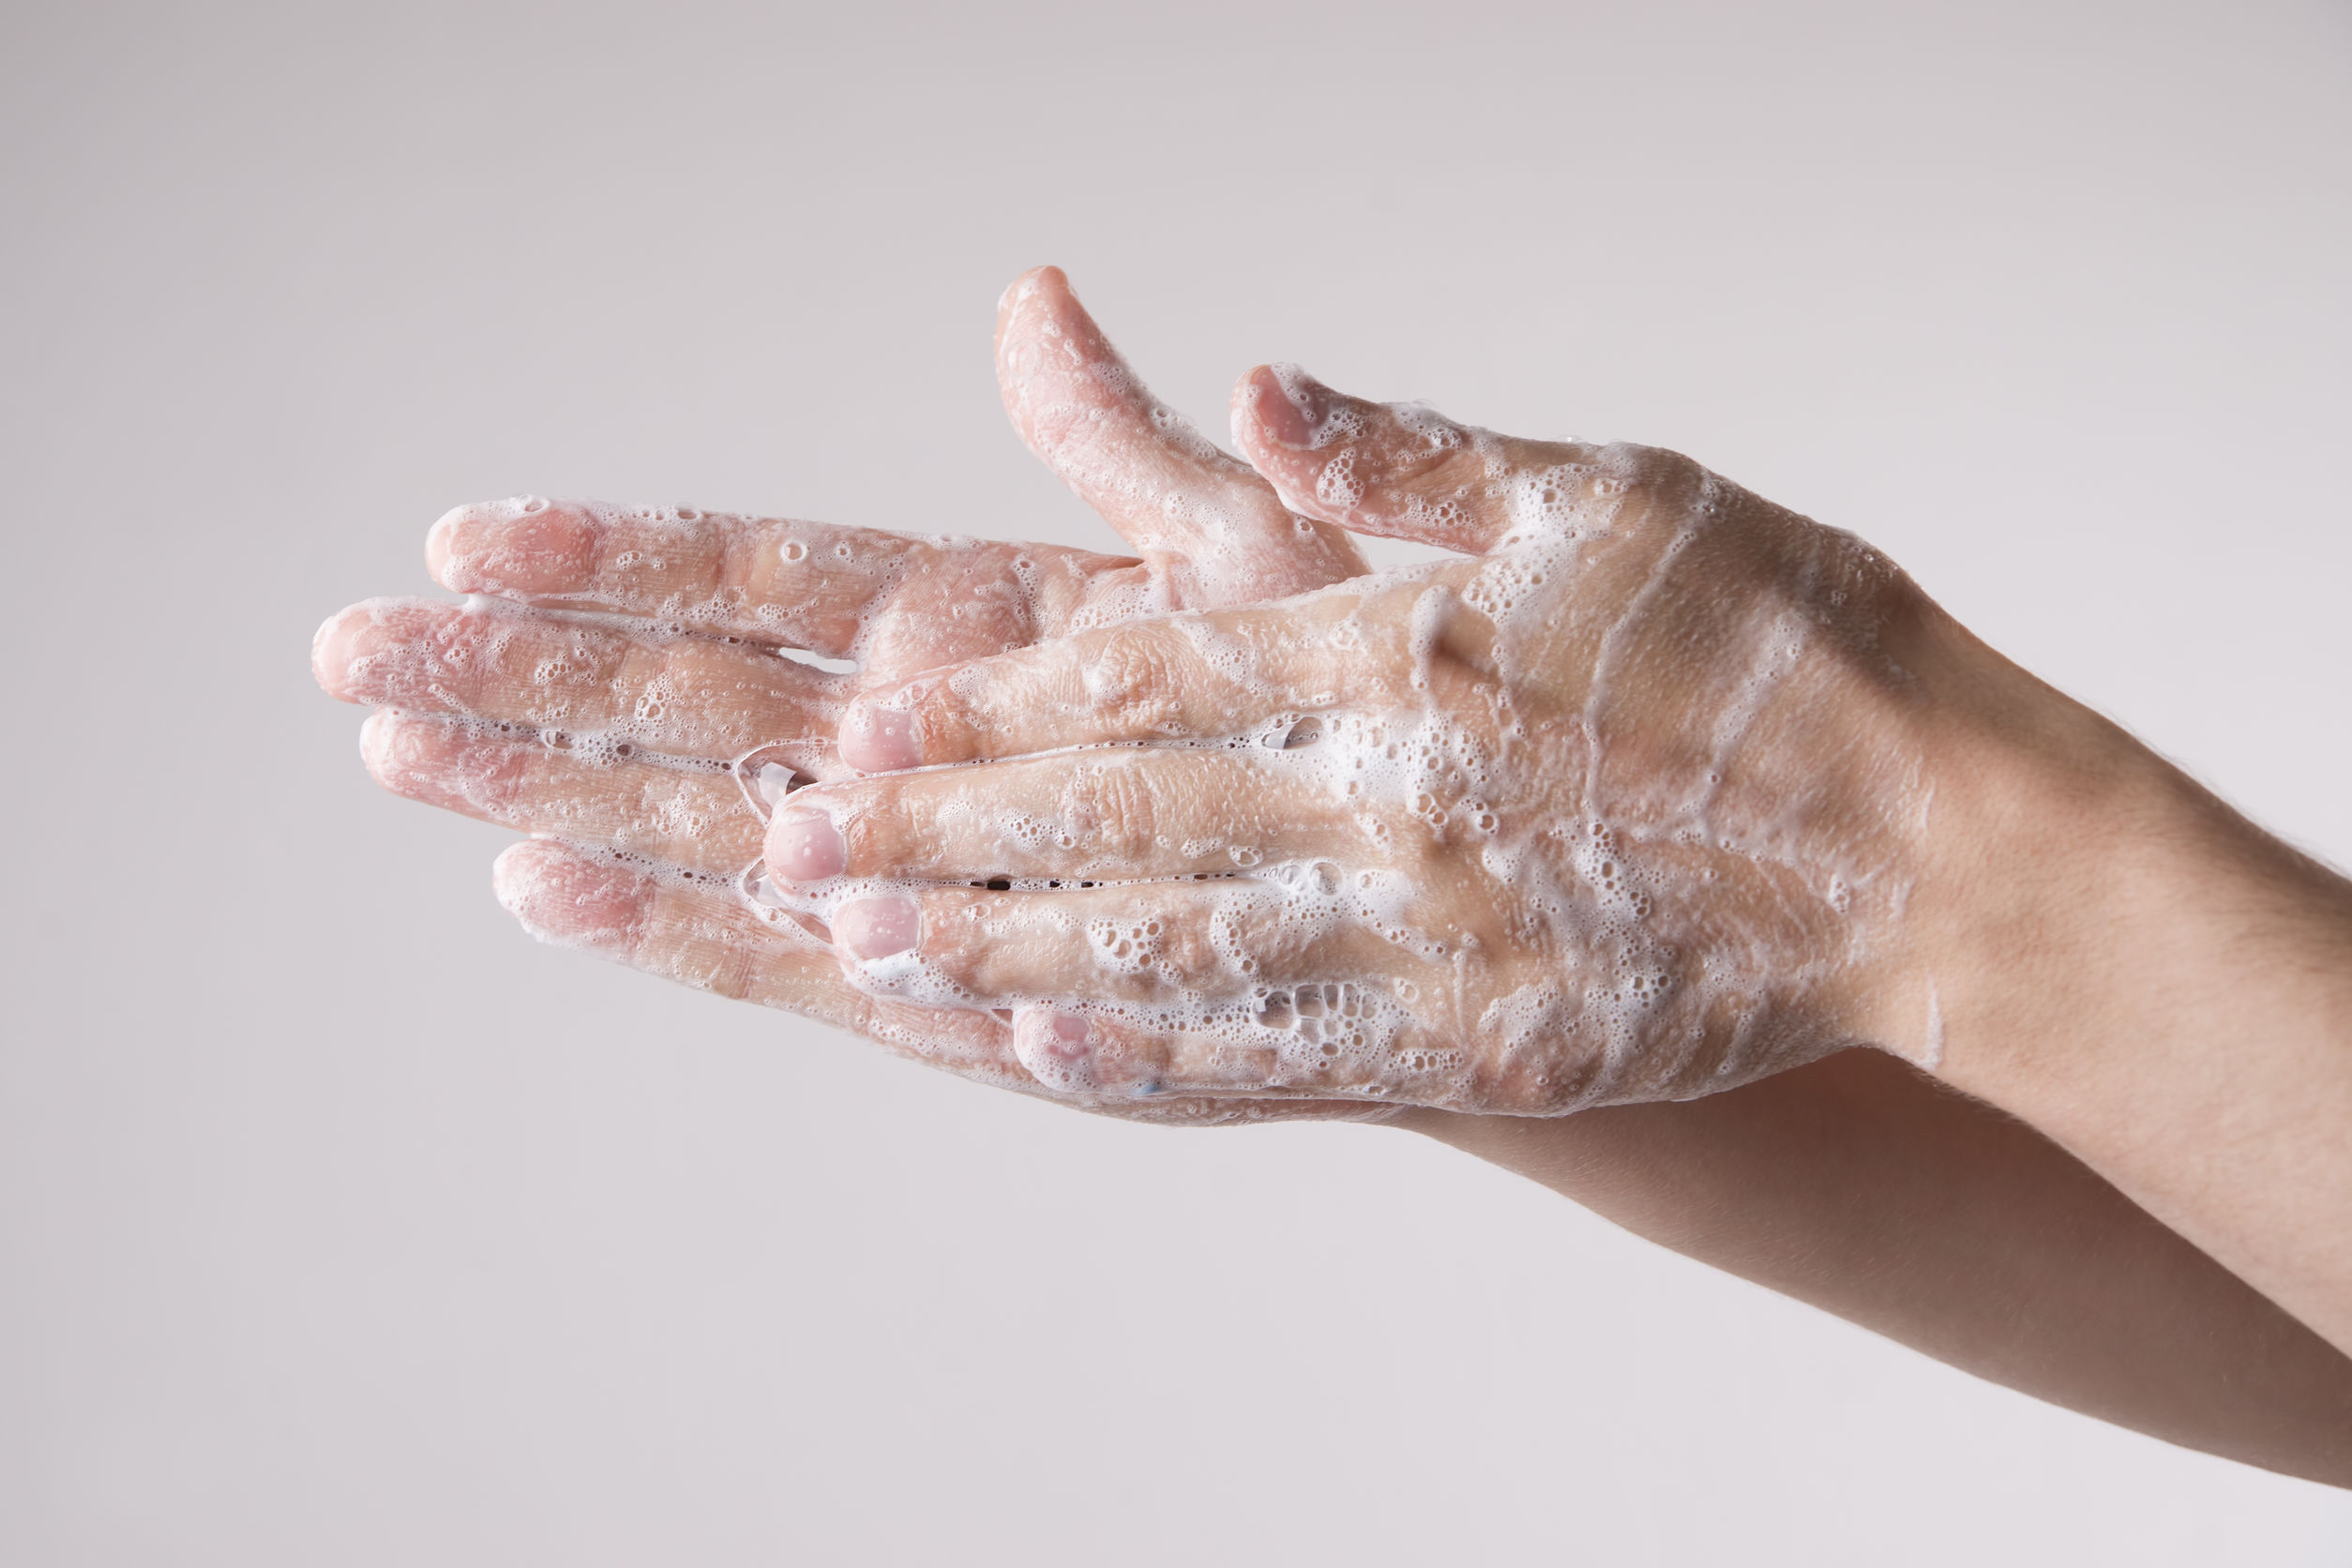 washing hand with soap and water